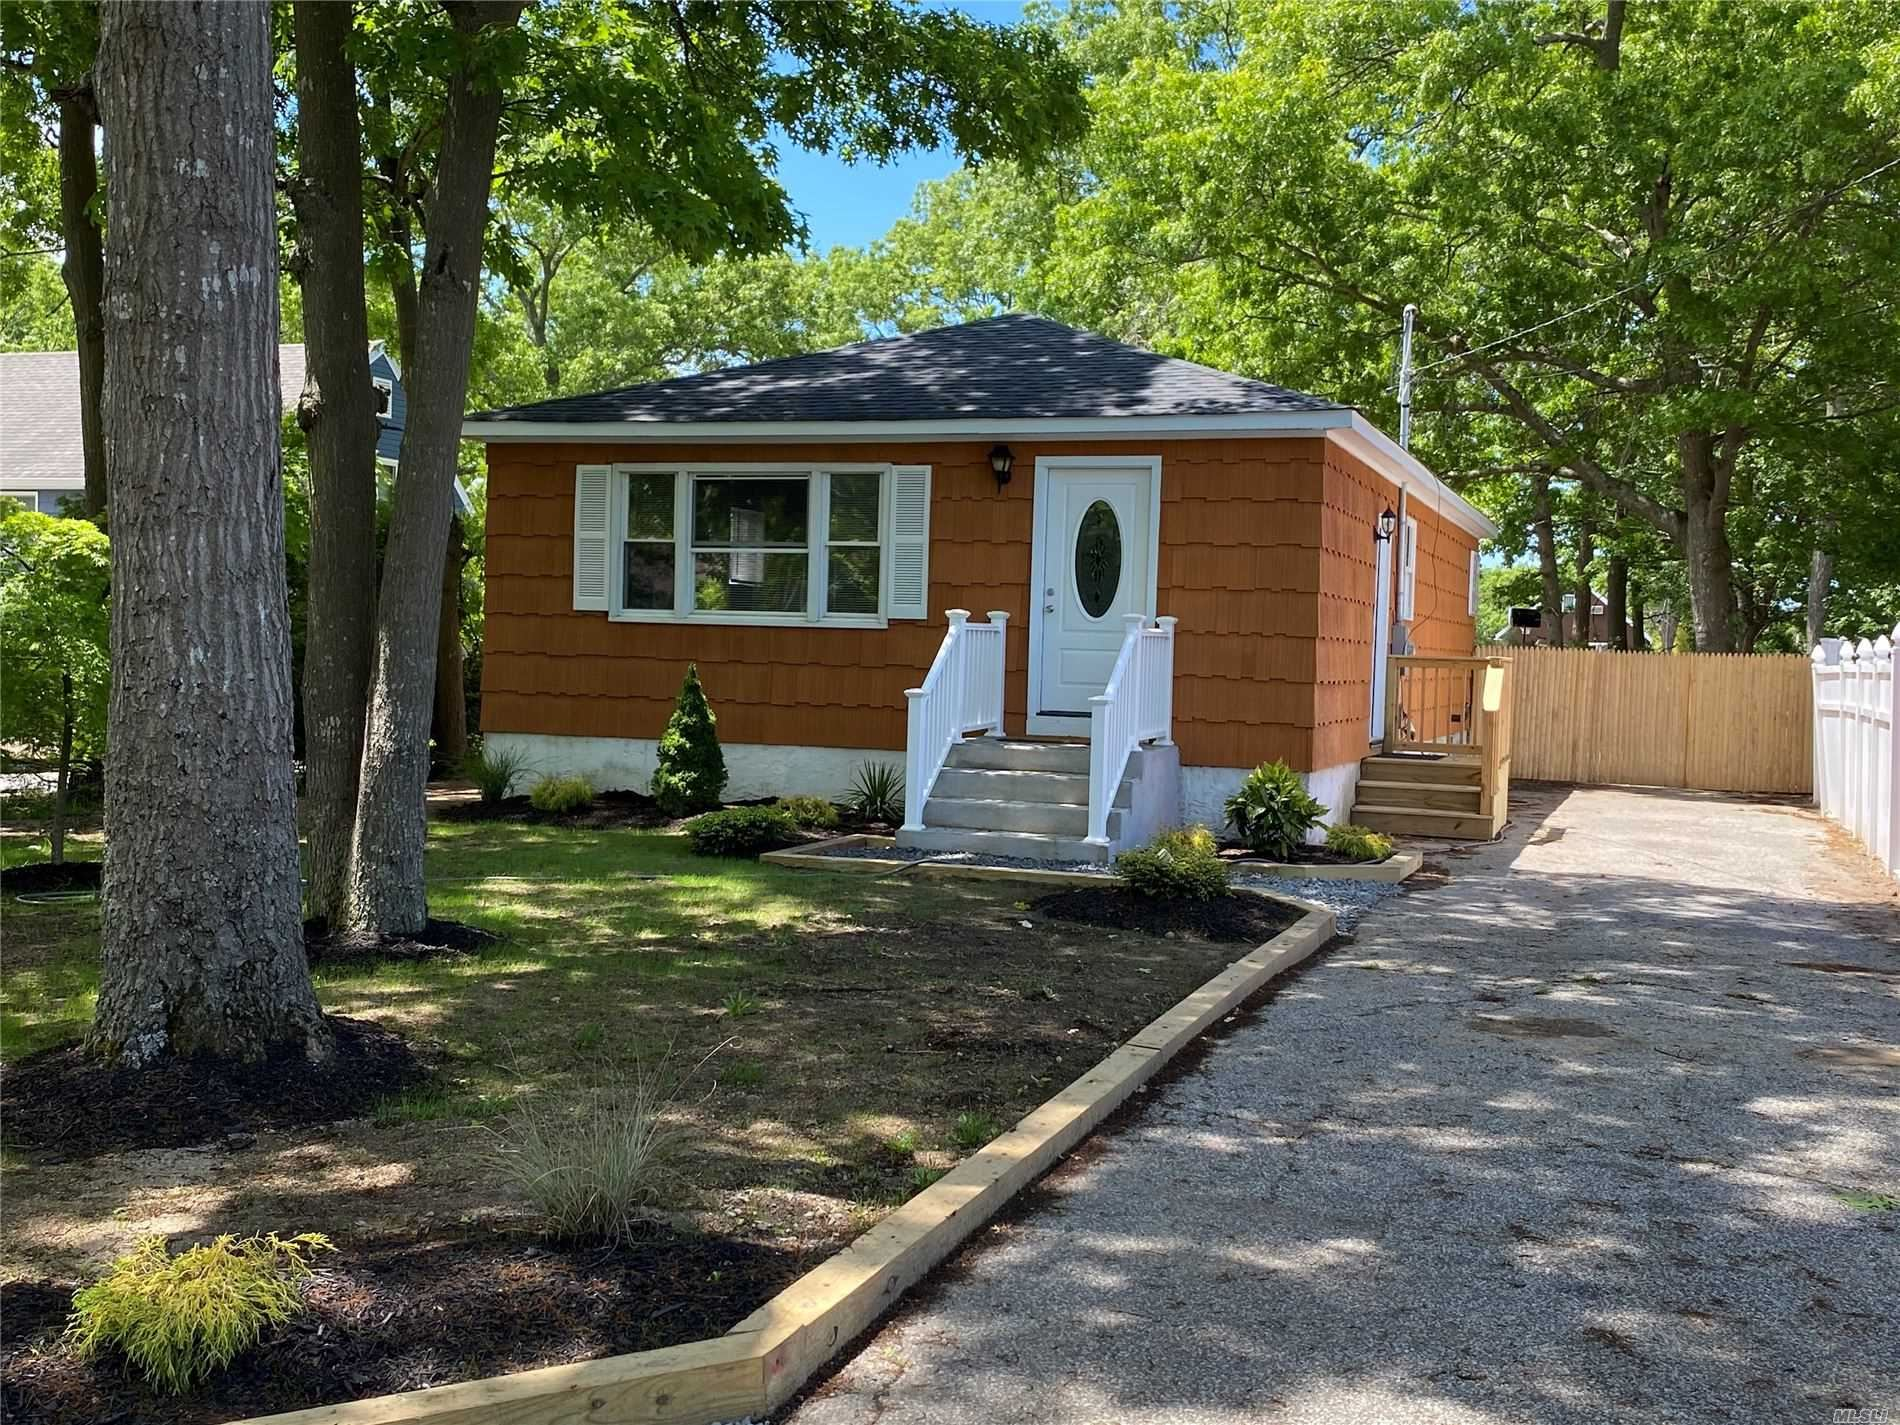 235 W End Ave, Shirley, NY 11967 - MLS#: 3218178